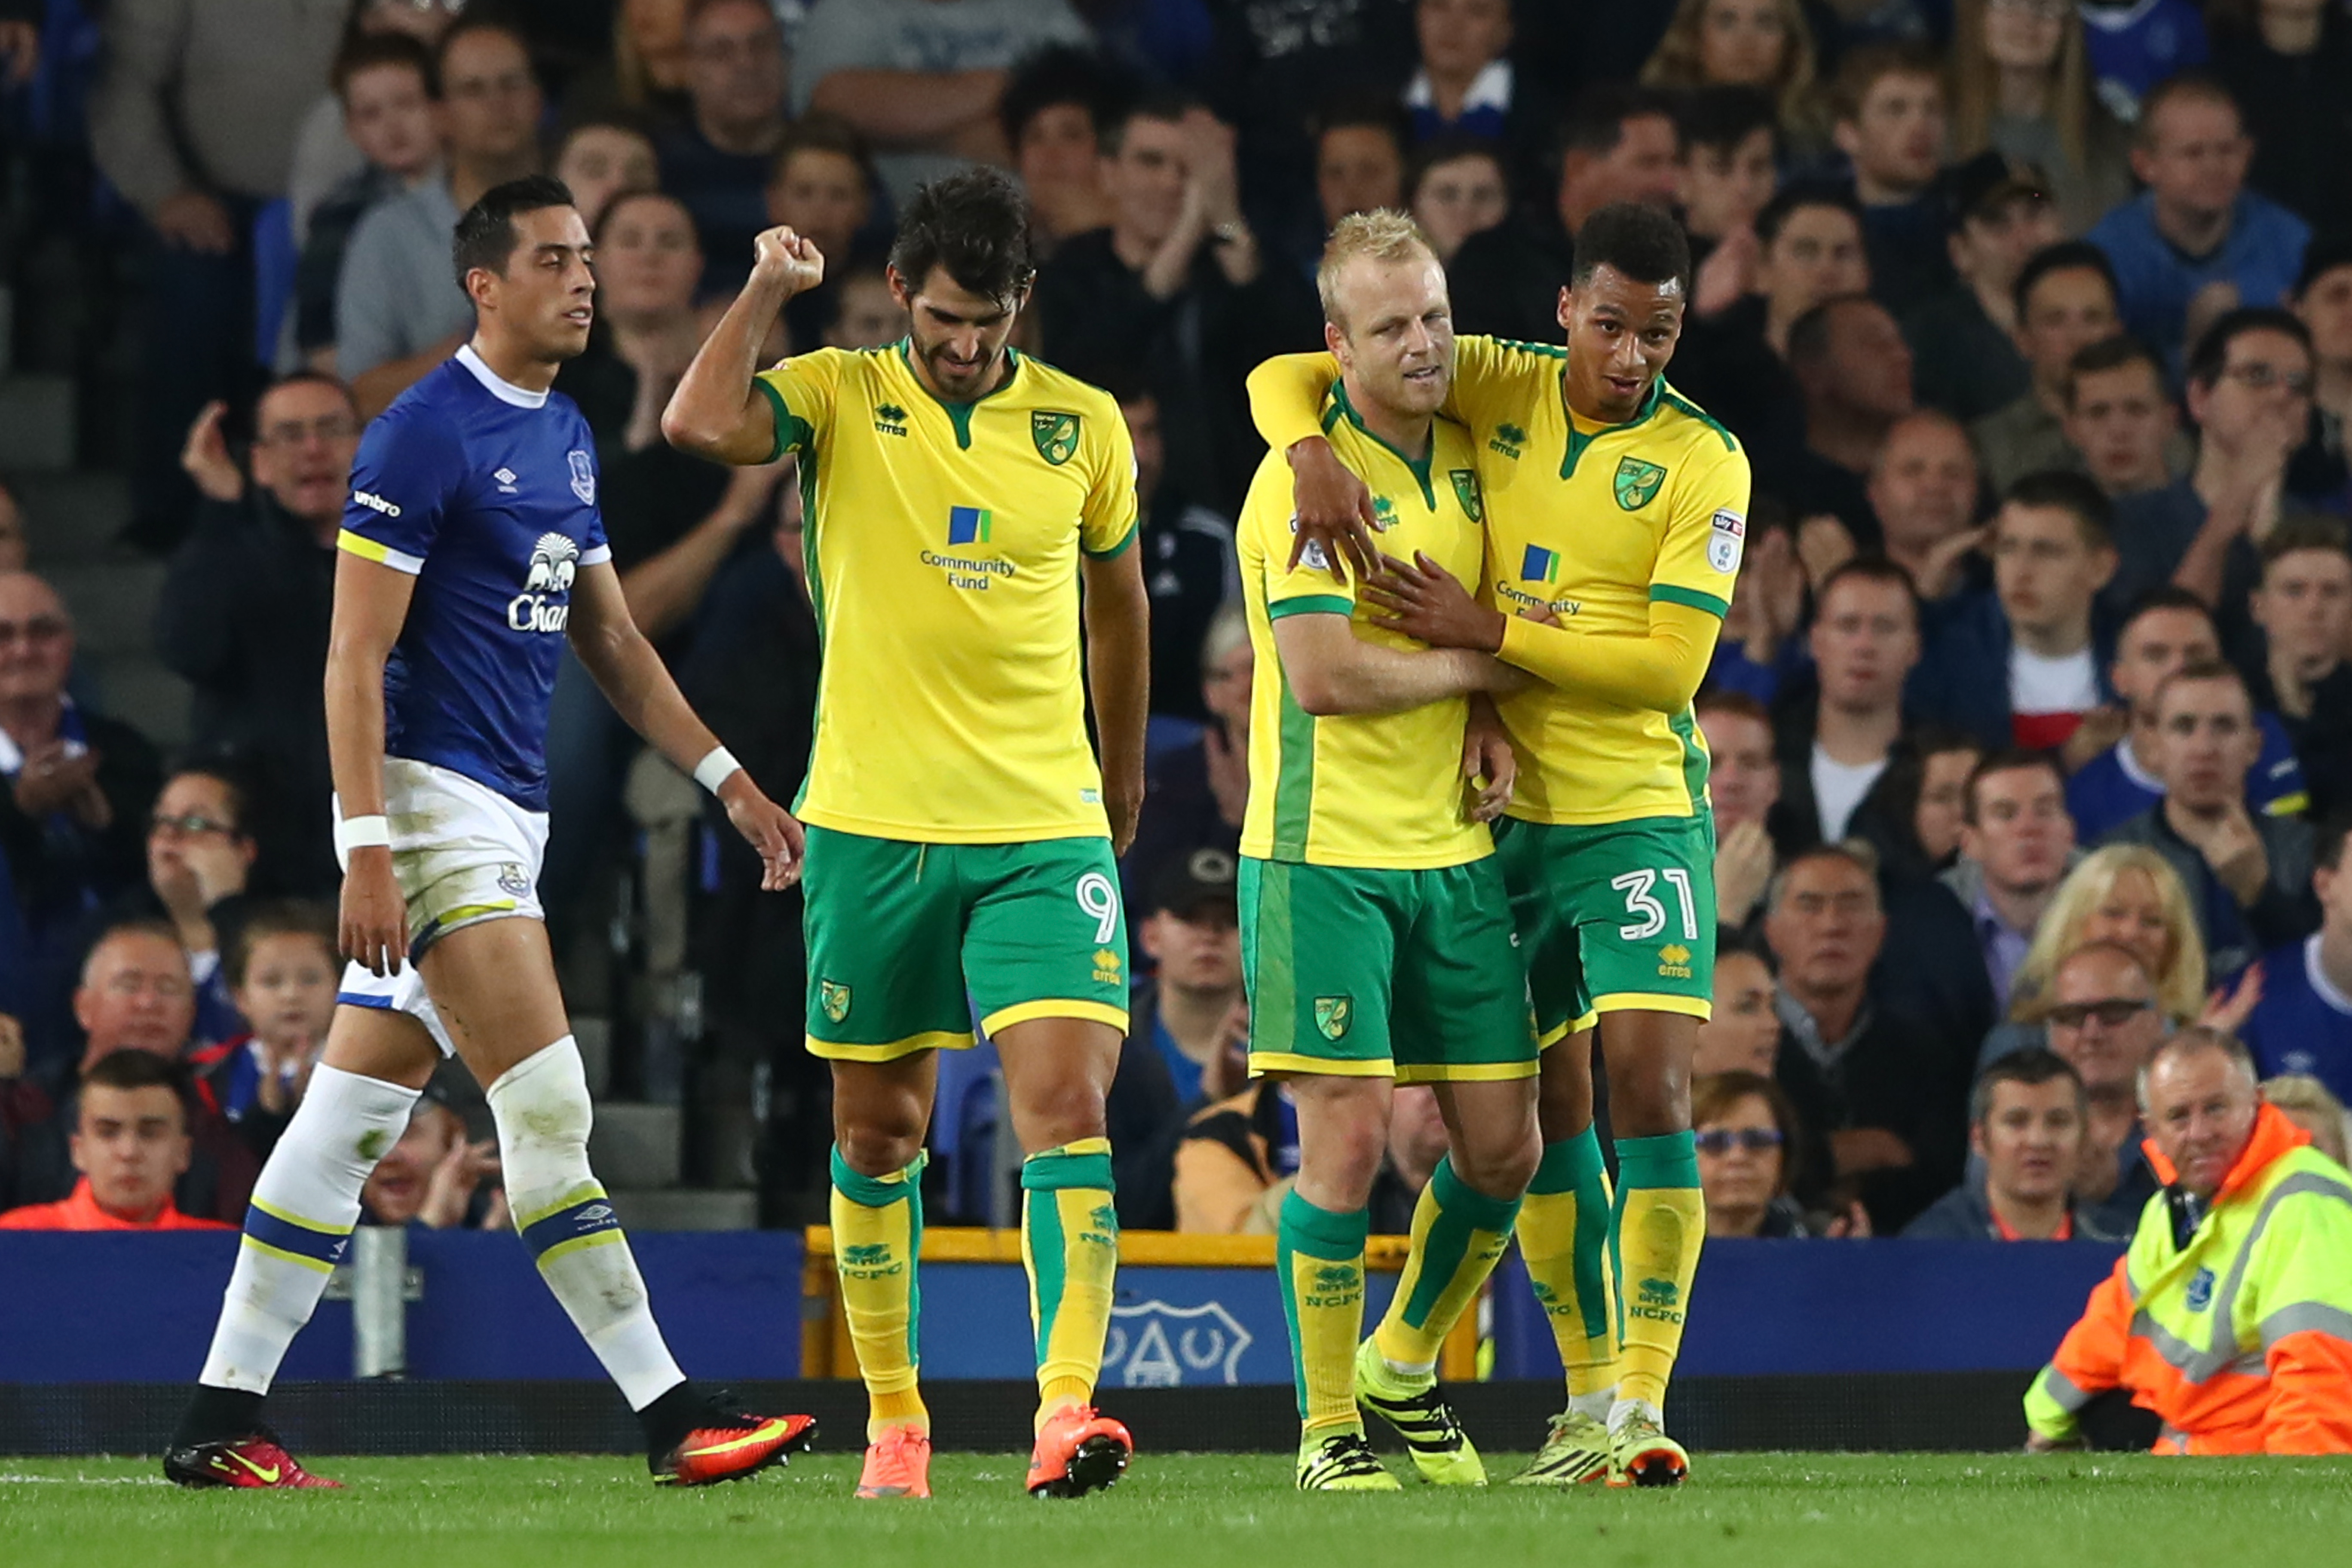 Everton vs Norwich City: The Opposition View